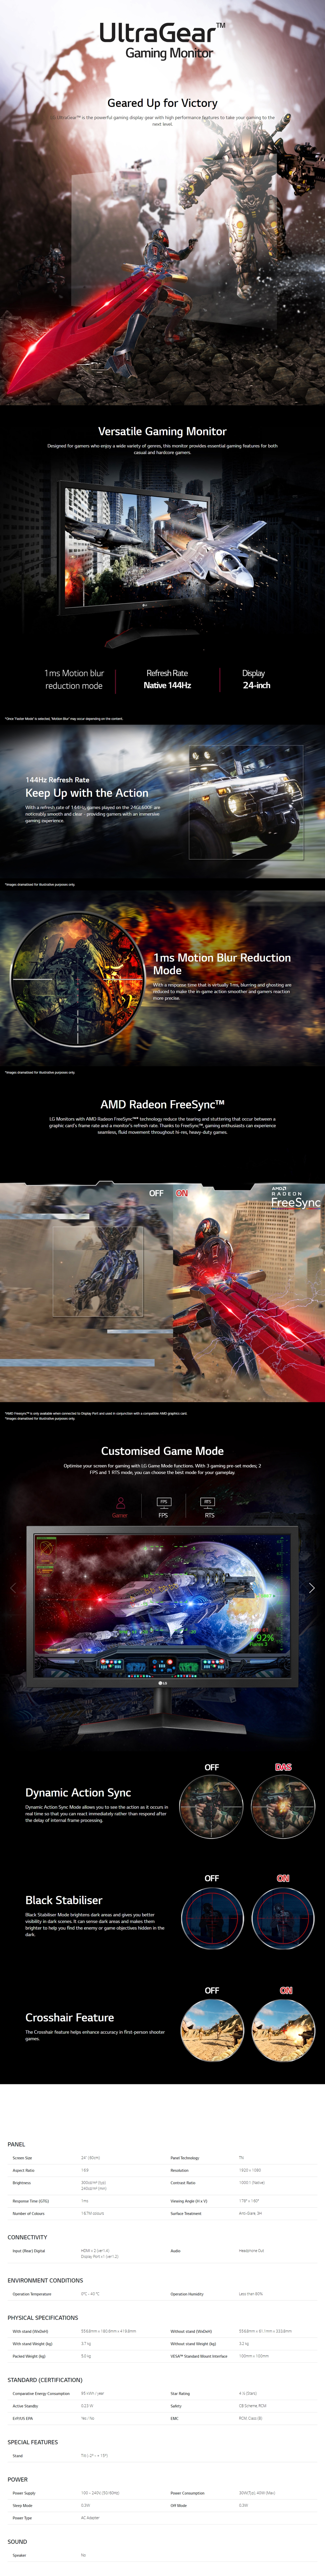 """A large marketing image providing additional information about the product LG UltraGear 24GL600F-B 24"""" Full HD FreeSync 144Hz 1MS LED Gaming Monitor - Additional alt info not provided"""